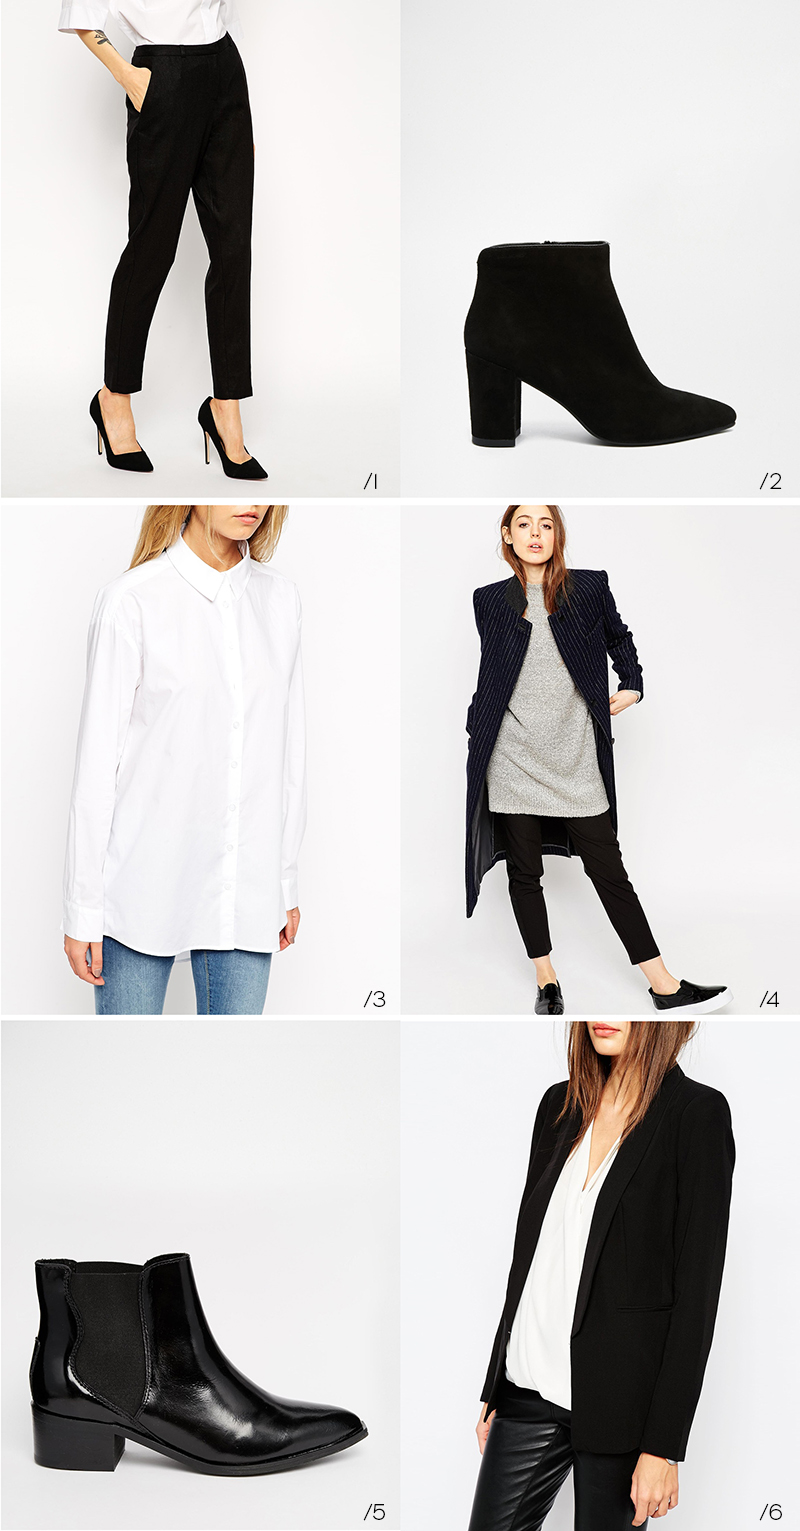 Asos wishes